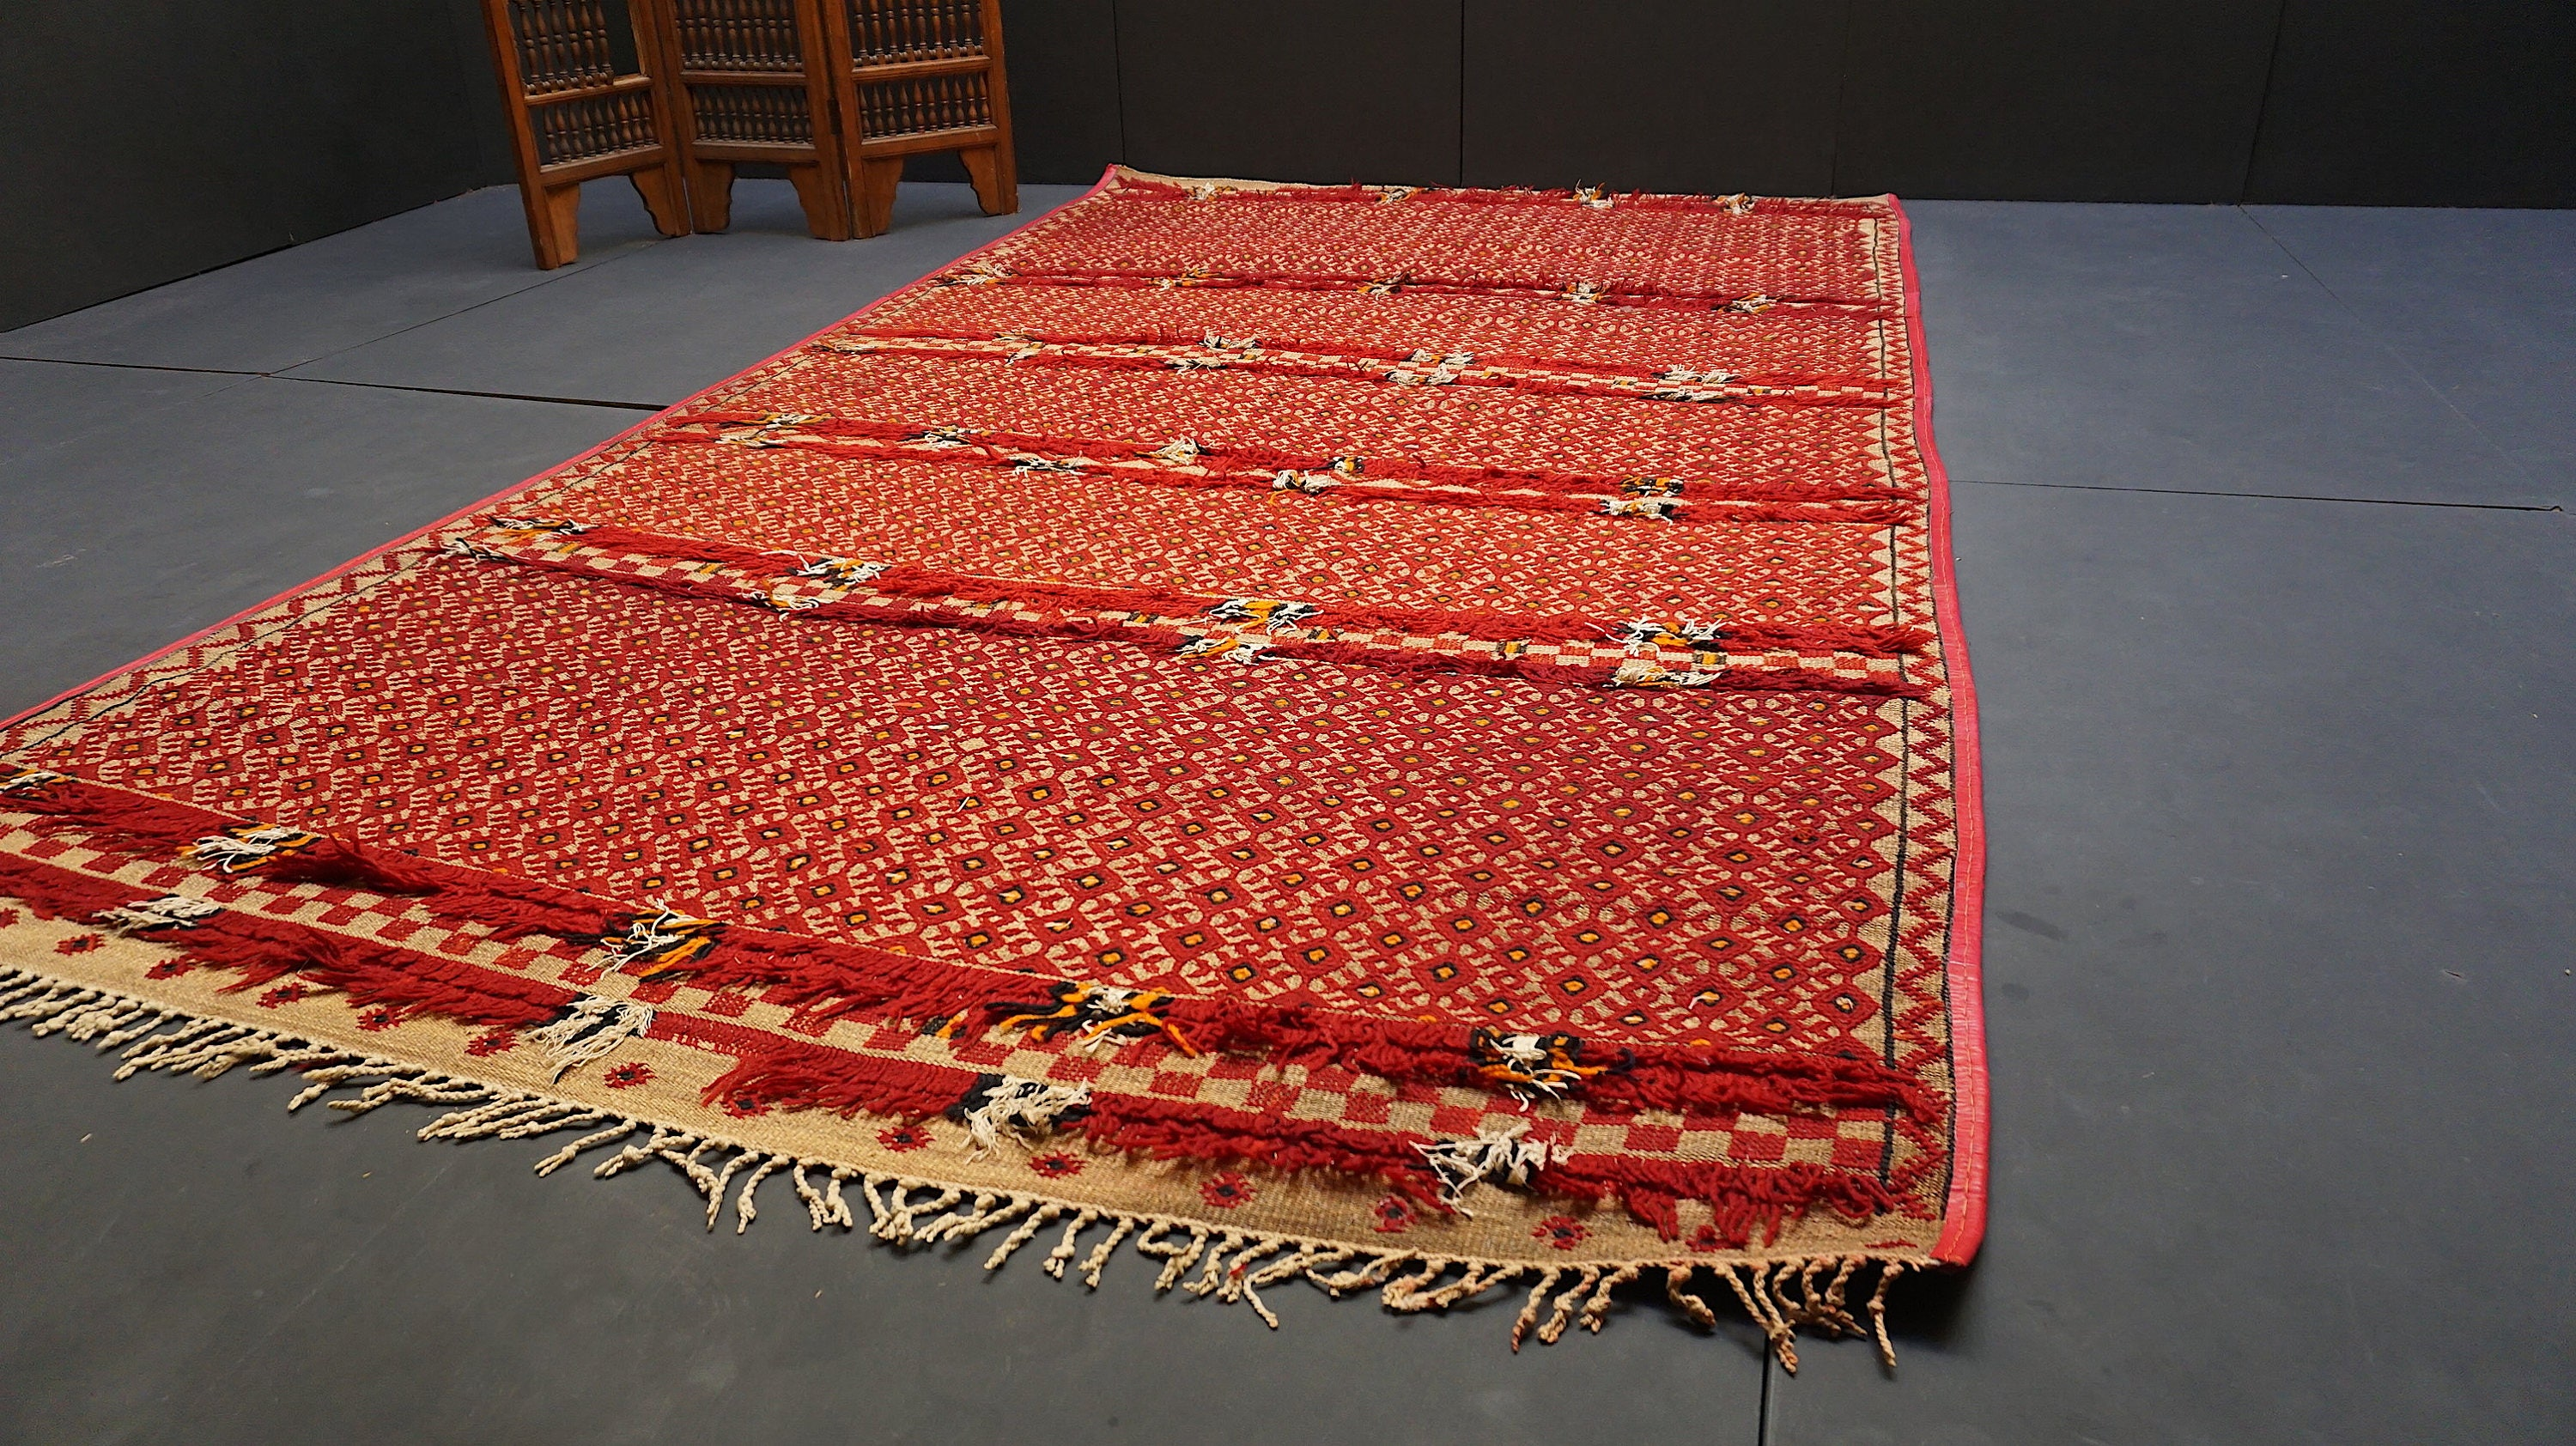 leather or nomad straw rug fullxfull mat berber antique mats tuareg with trim moroccan il p hassira hasira